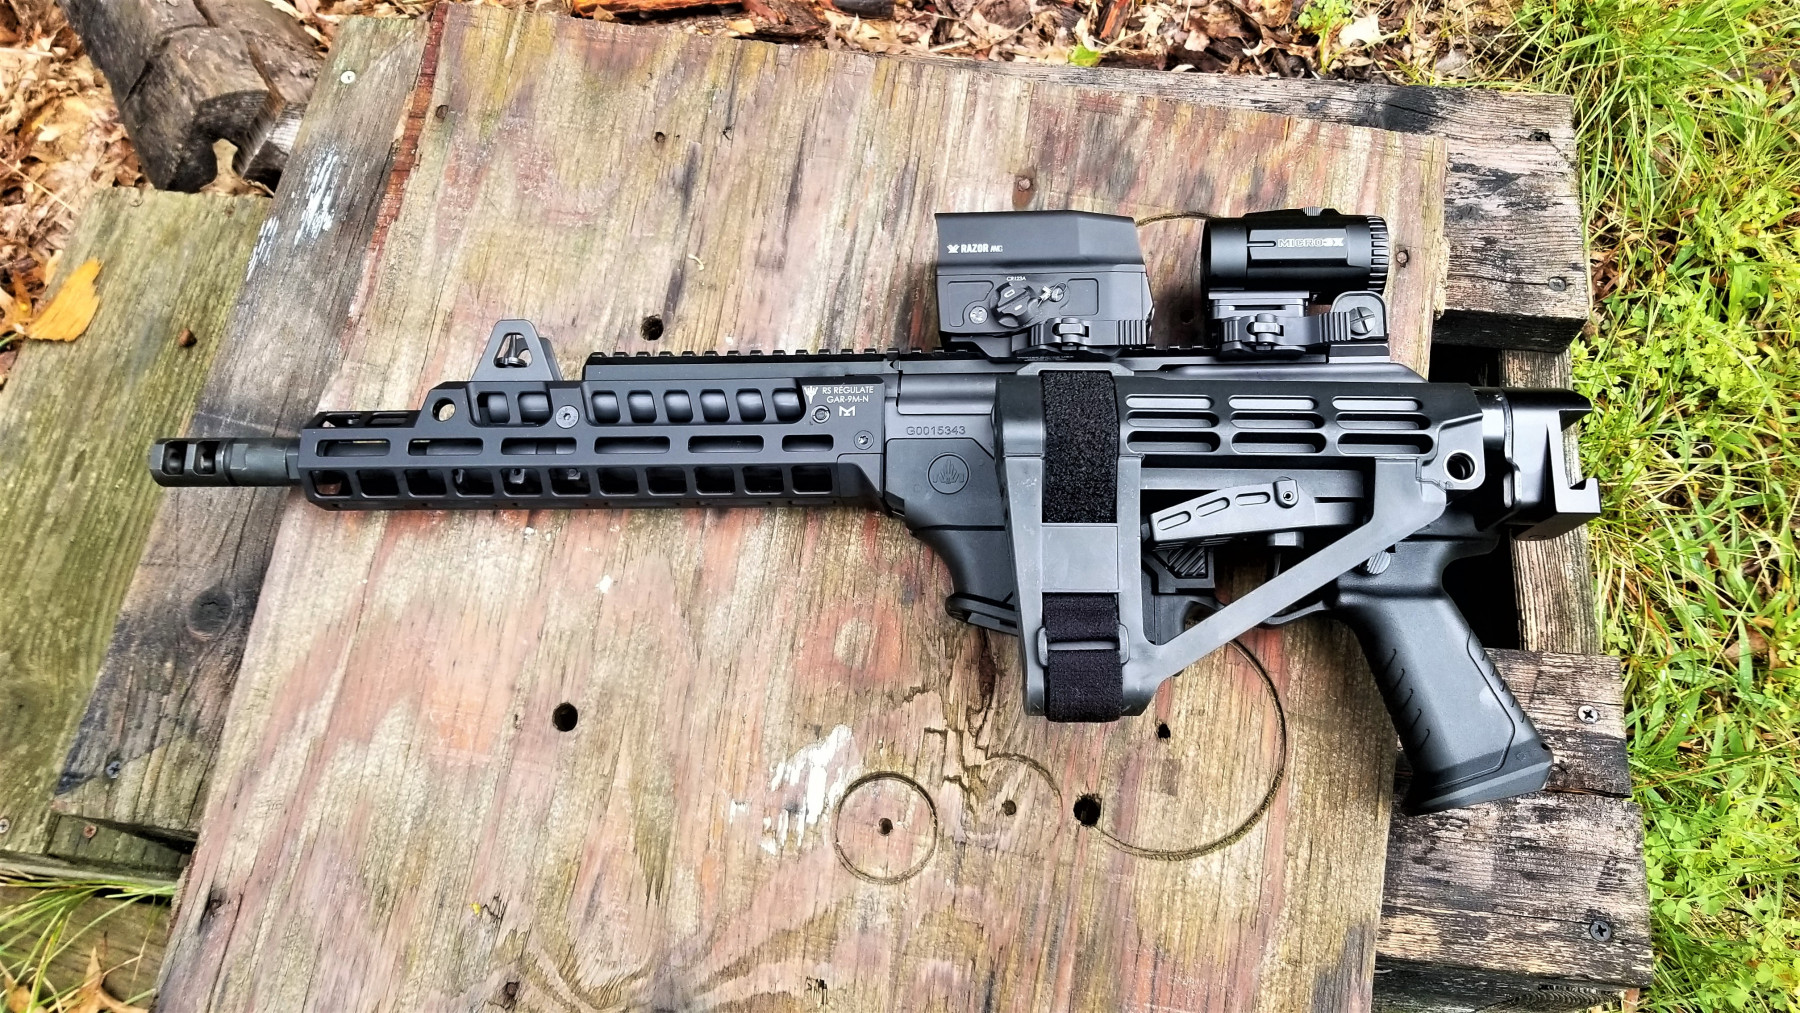 The FSM-AR folder is left-folding.  It does obstruct the charging handle and can only be folded for storage but must be open straight to operate.